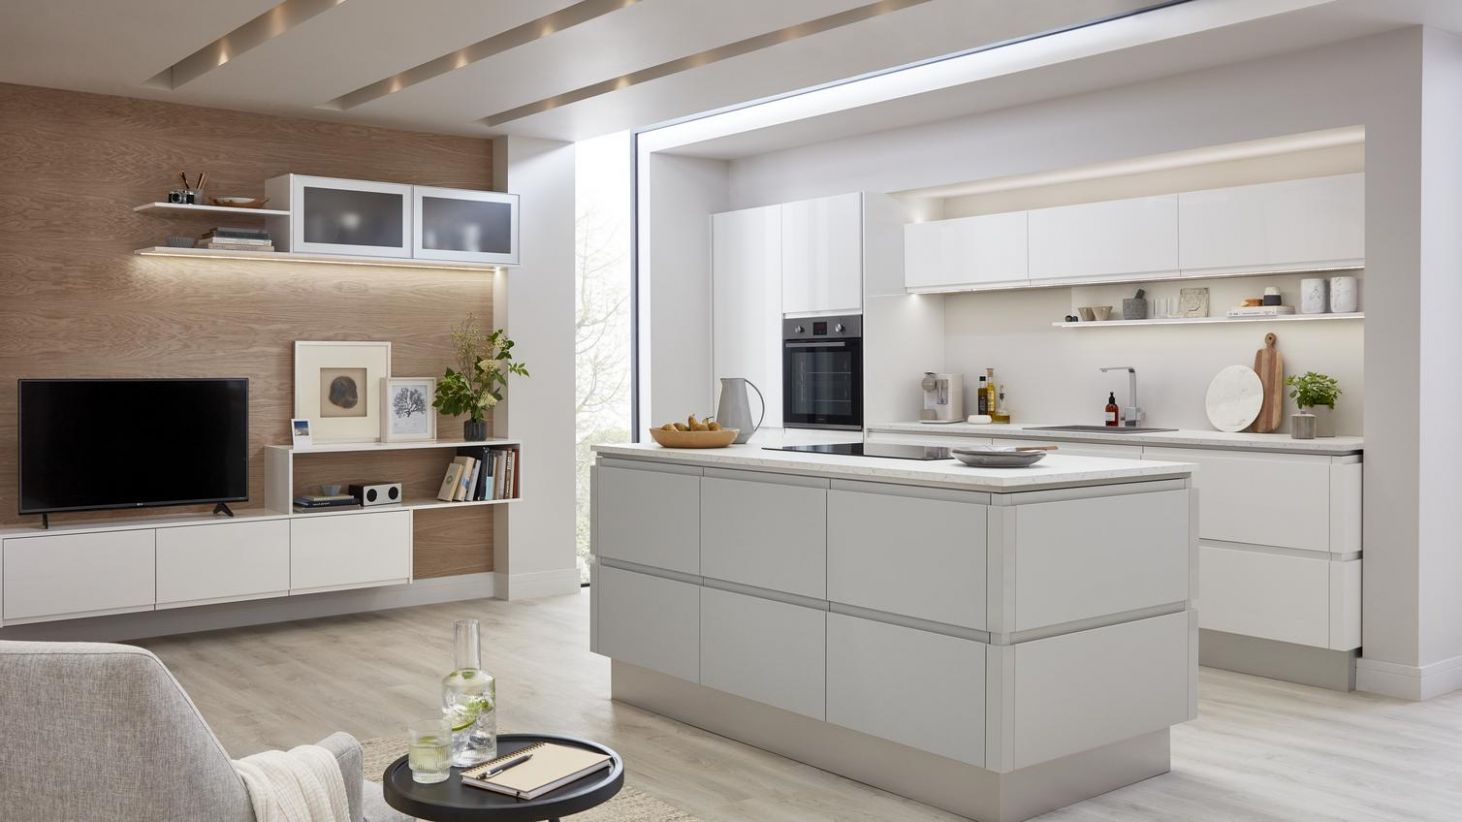 12 Beautiful Kitchens | Howdens - kitchen ideas uk howdens